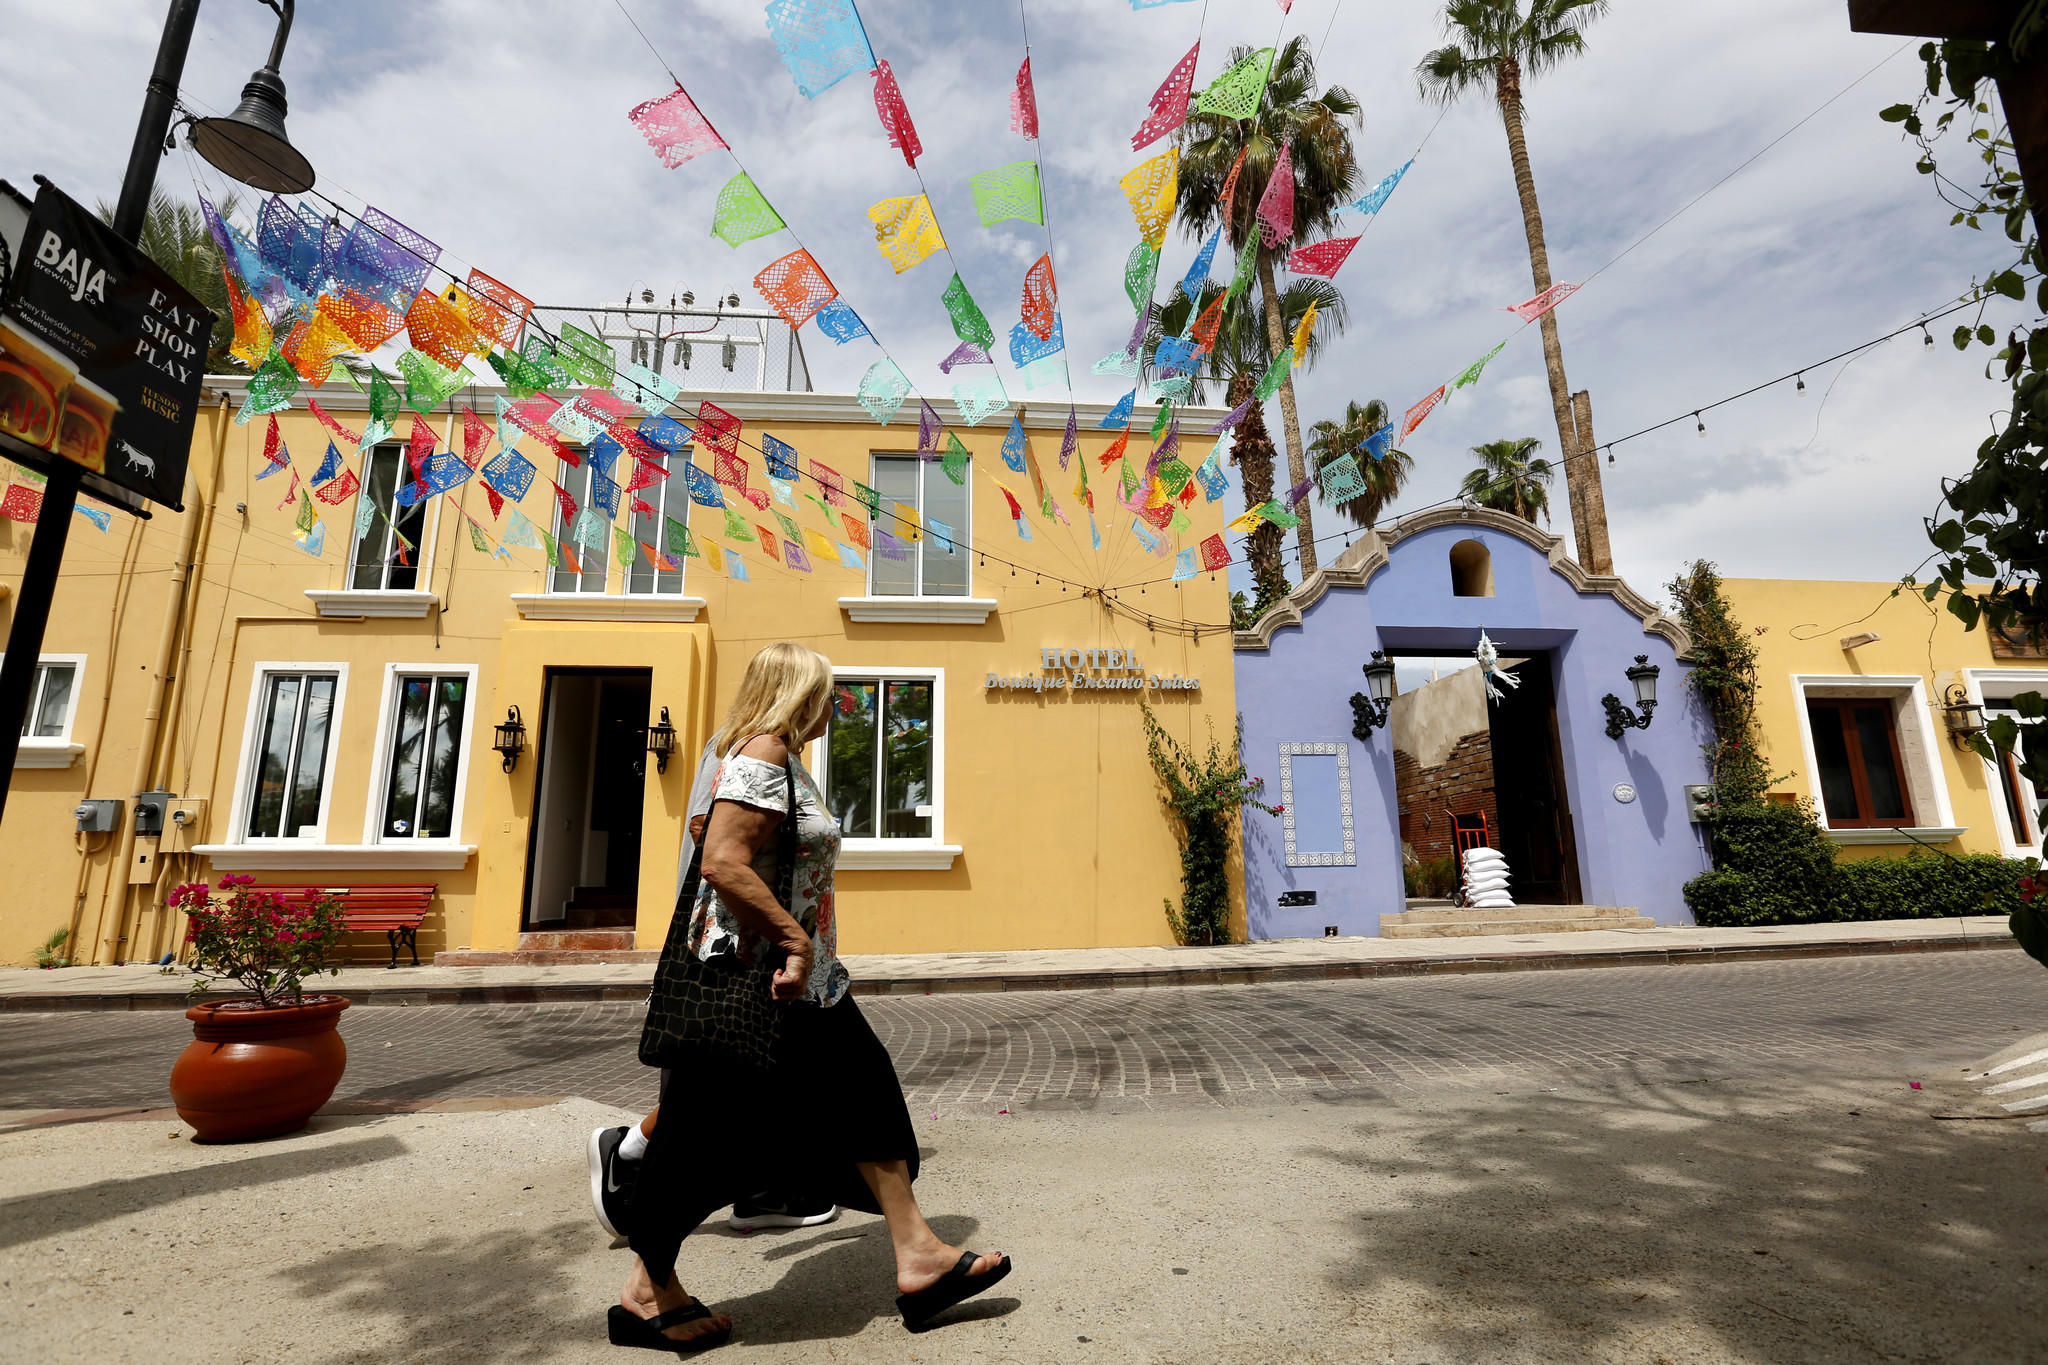 Colonial buildings line the streets of the historic central district in San Jose del Cabo. The U.S. Department of State issued a warning to U.S. citizens about the risk of traveling the Los Cabos area due to the activities of criminal organizations in those areas.